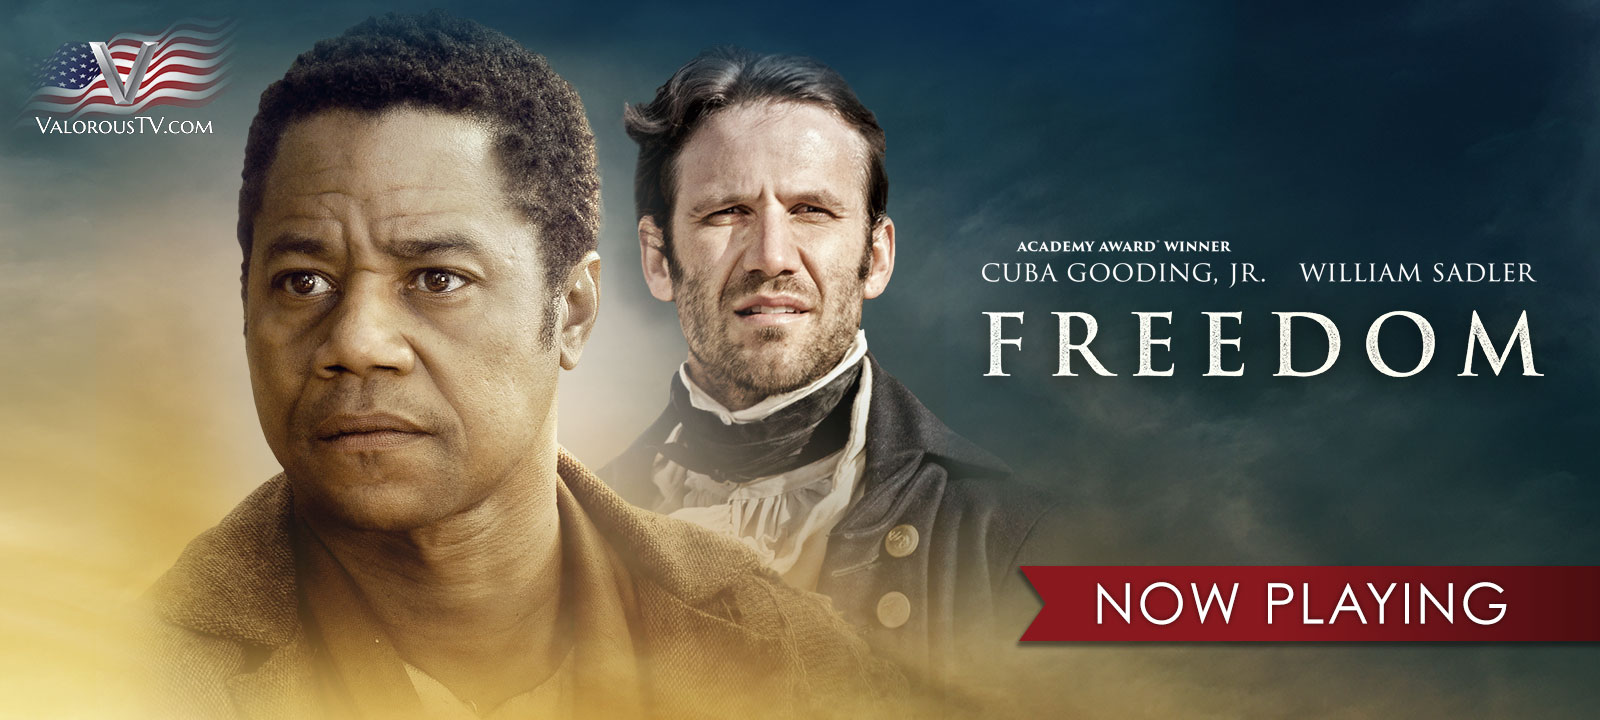 Freedom Starring Cuba Gooding, Jr